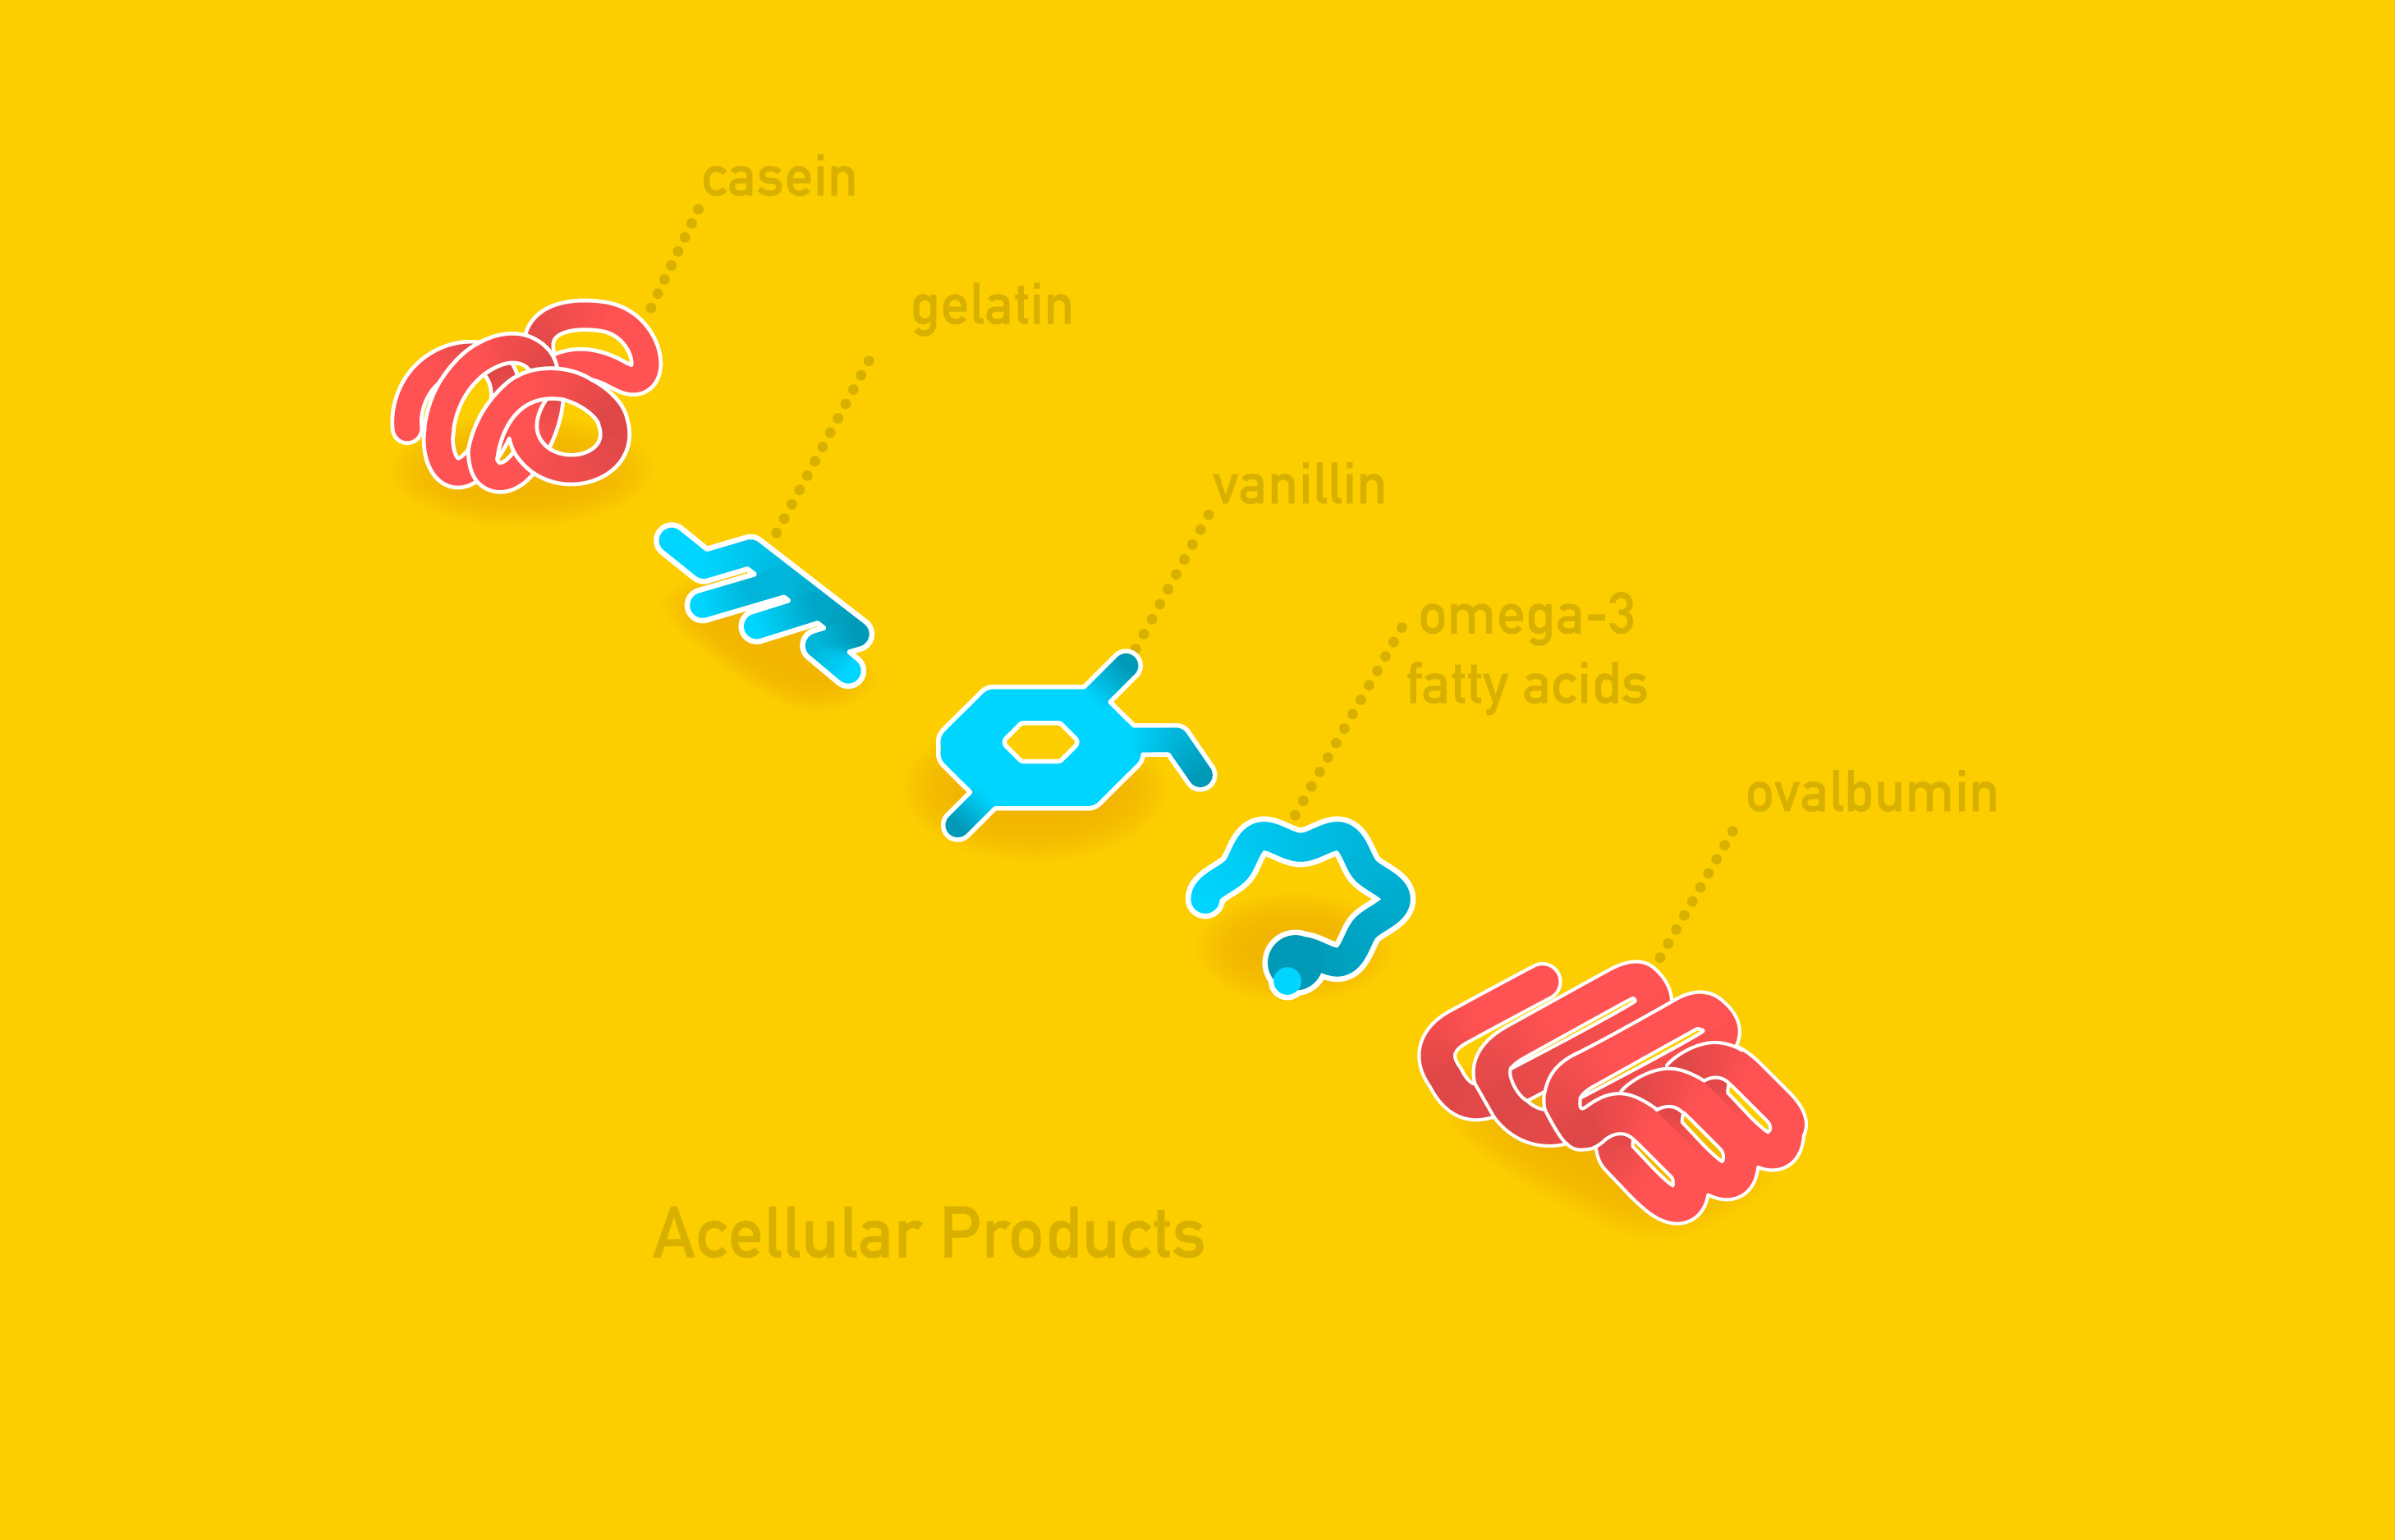 group of acellular products